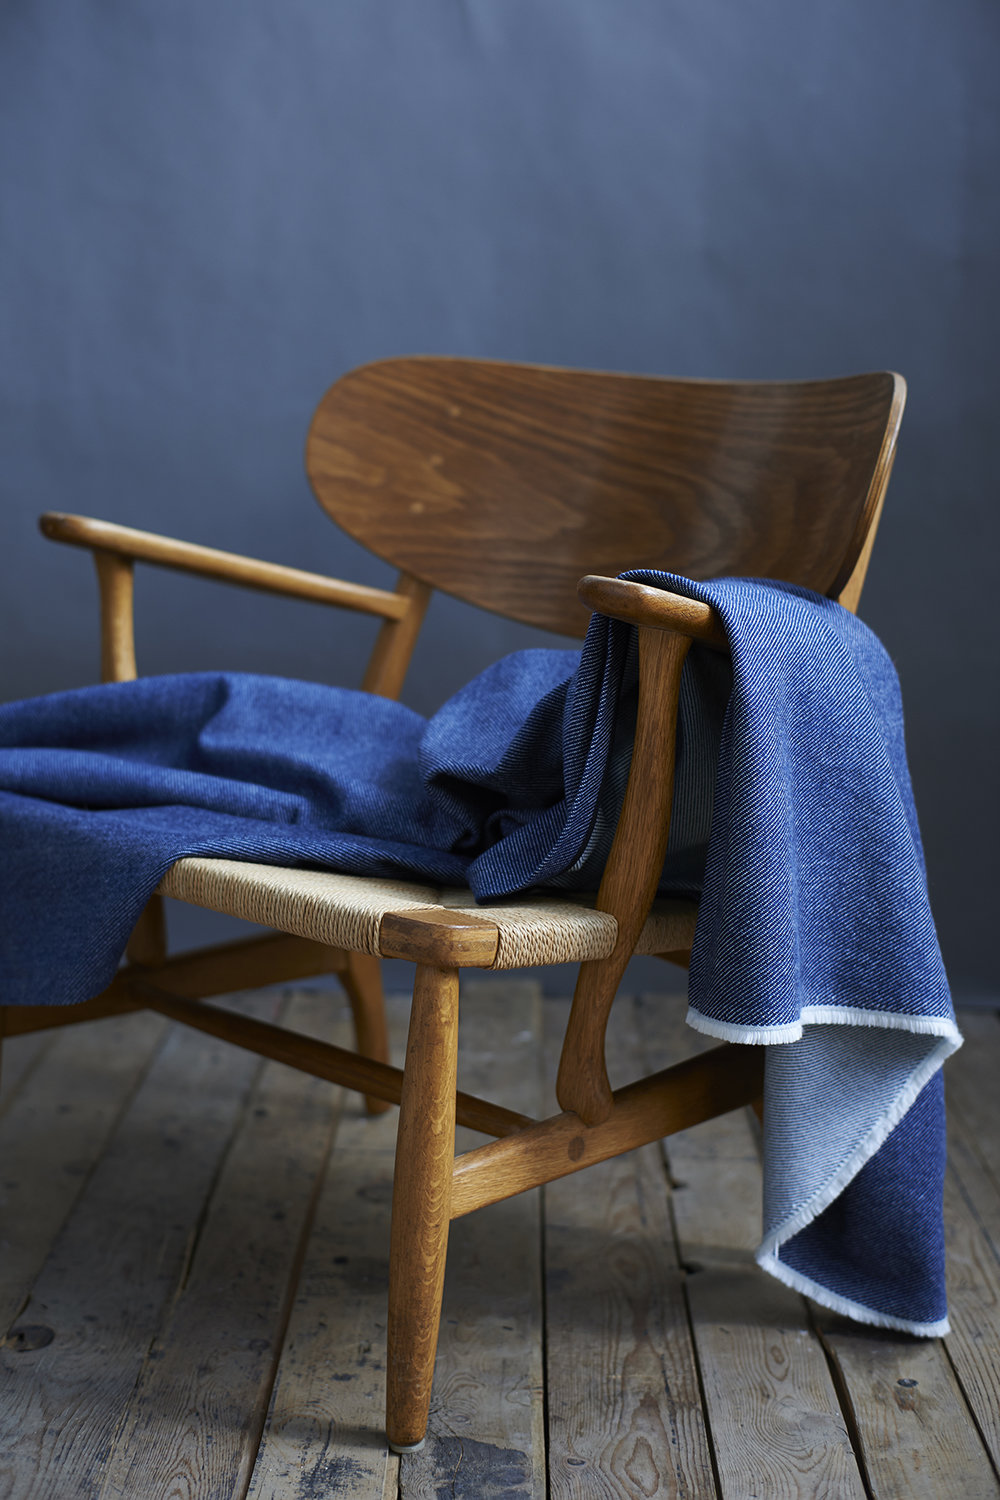 'Lane x London Cloth' Cotton Throw Context 1 LR.jpg